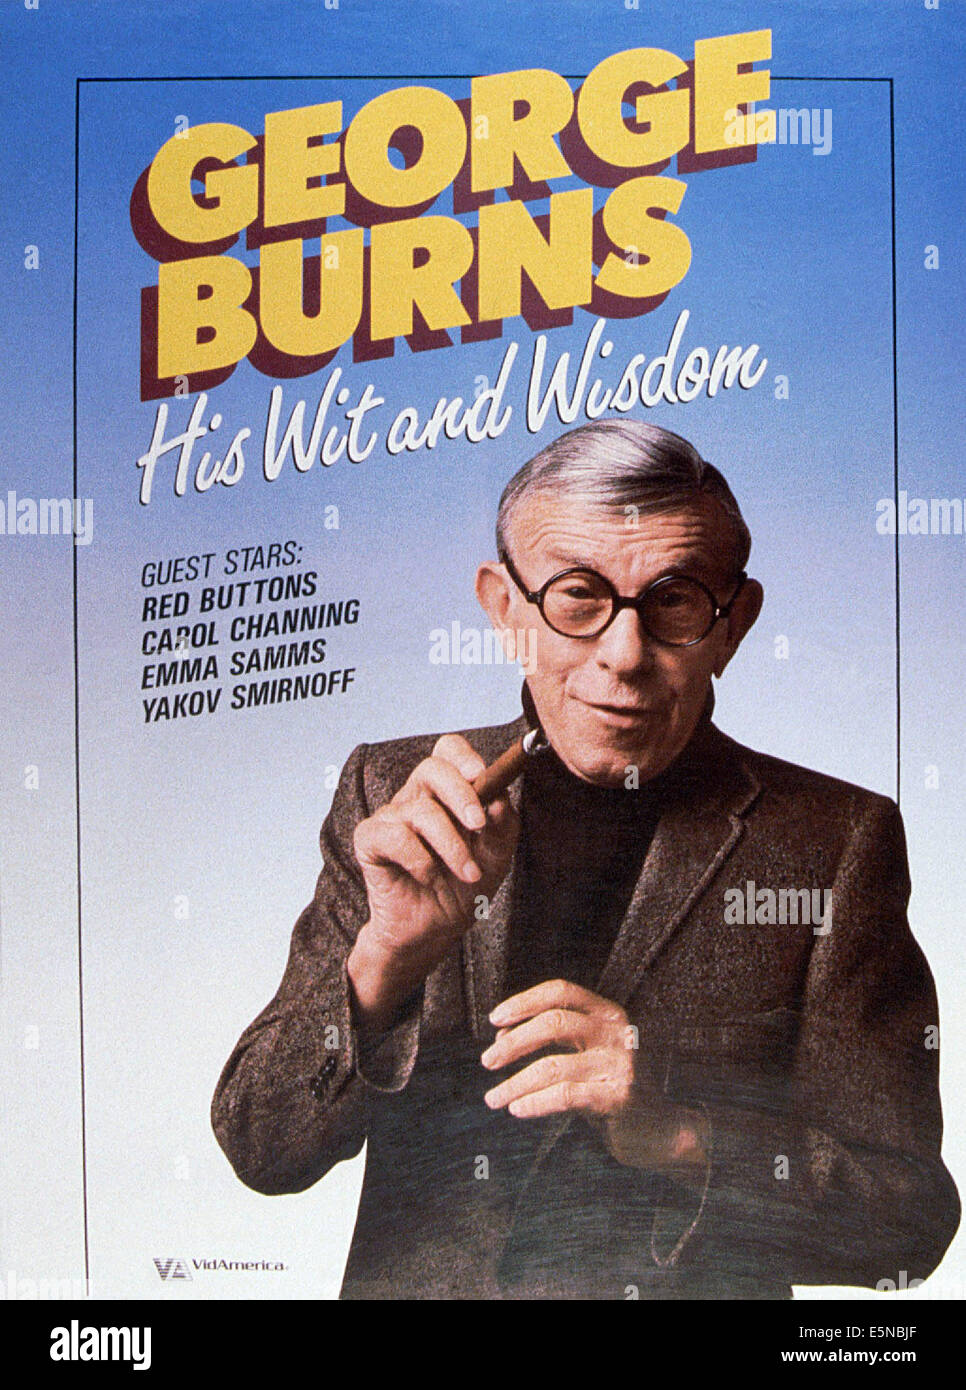 GEORGE BURNS - HIS WIT AND WISDOM, 1989 - Stock Image